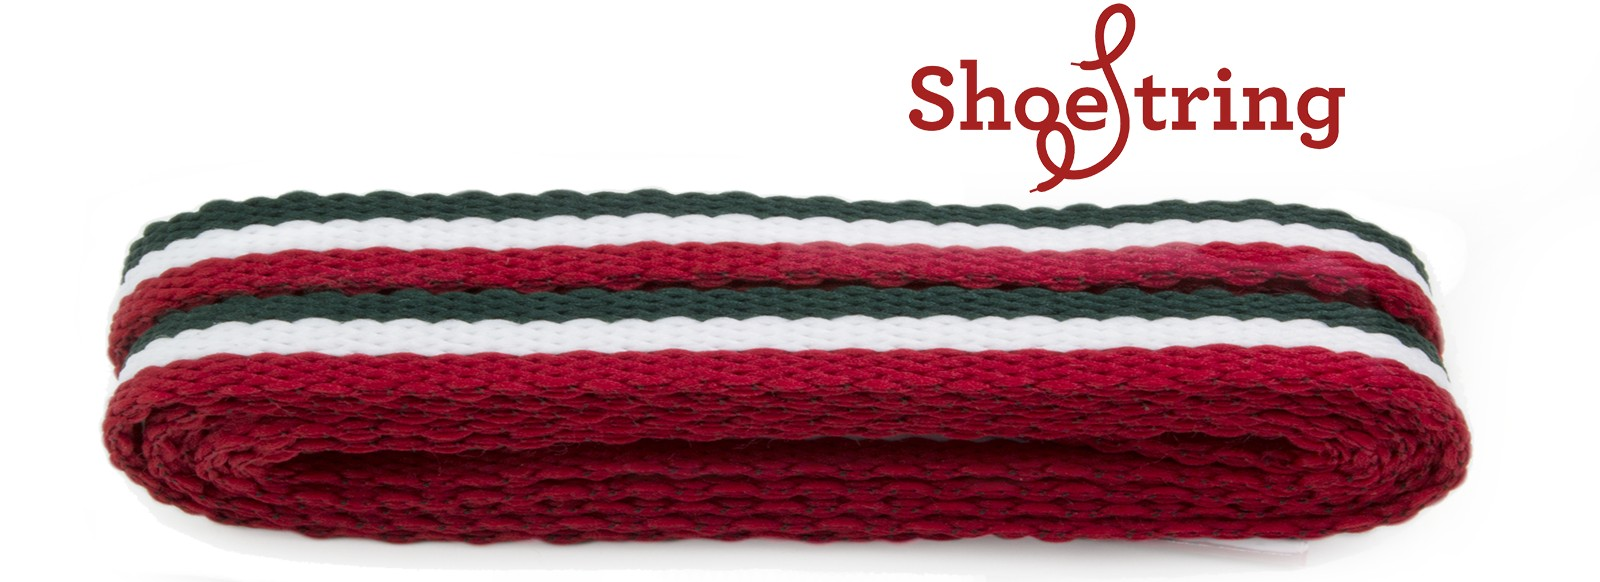 Sneaker Red/white/green Stripe